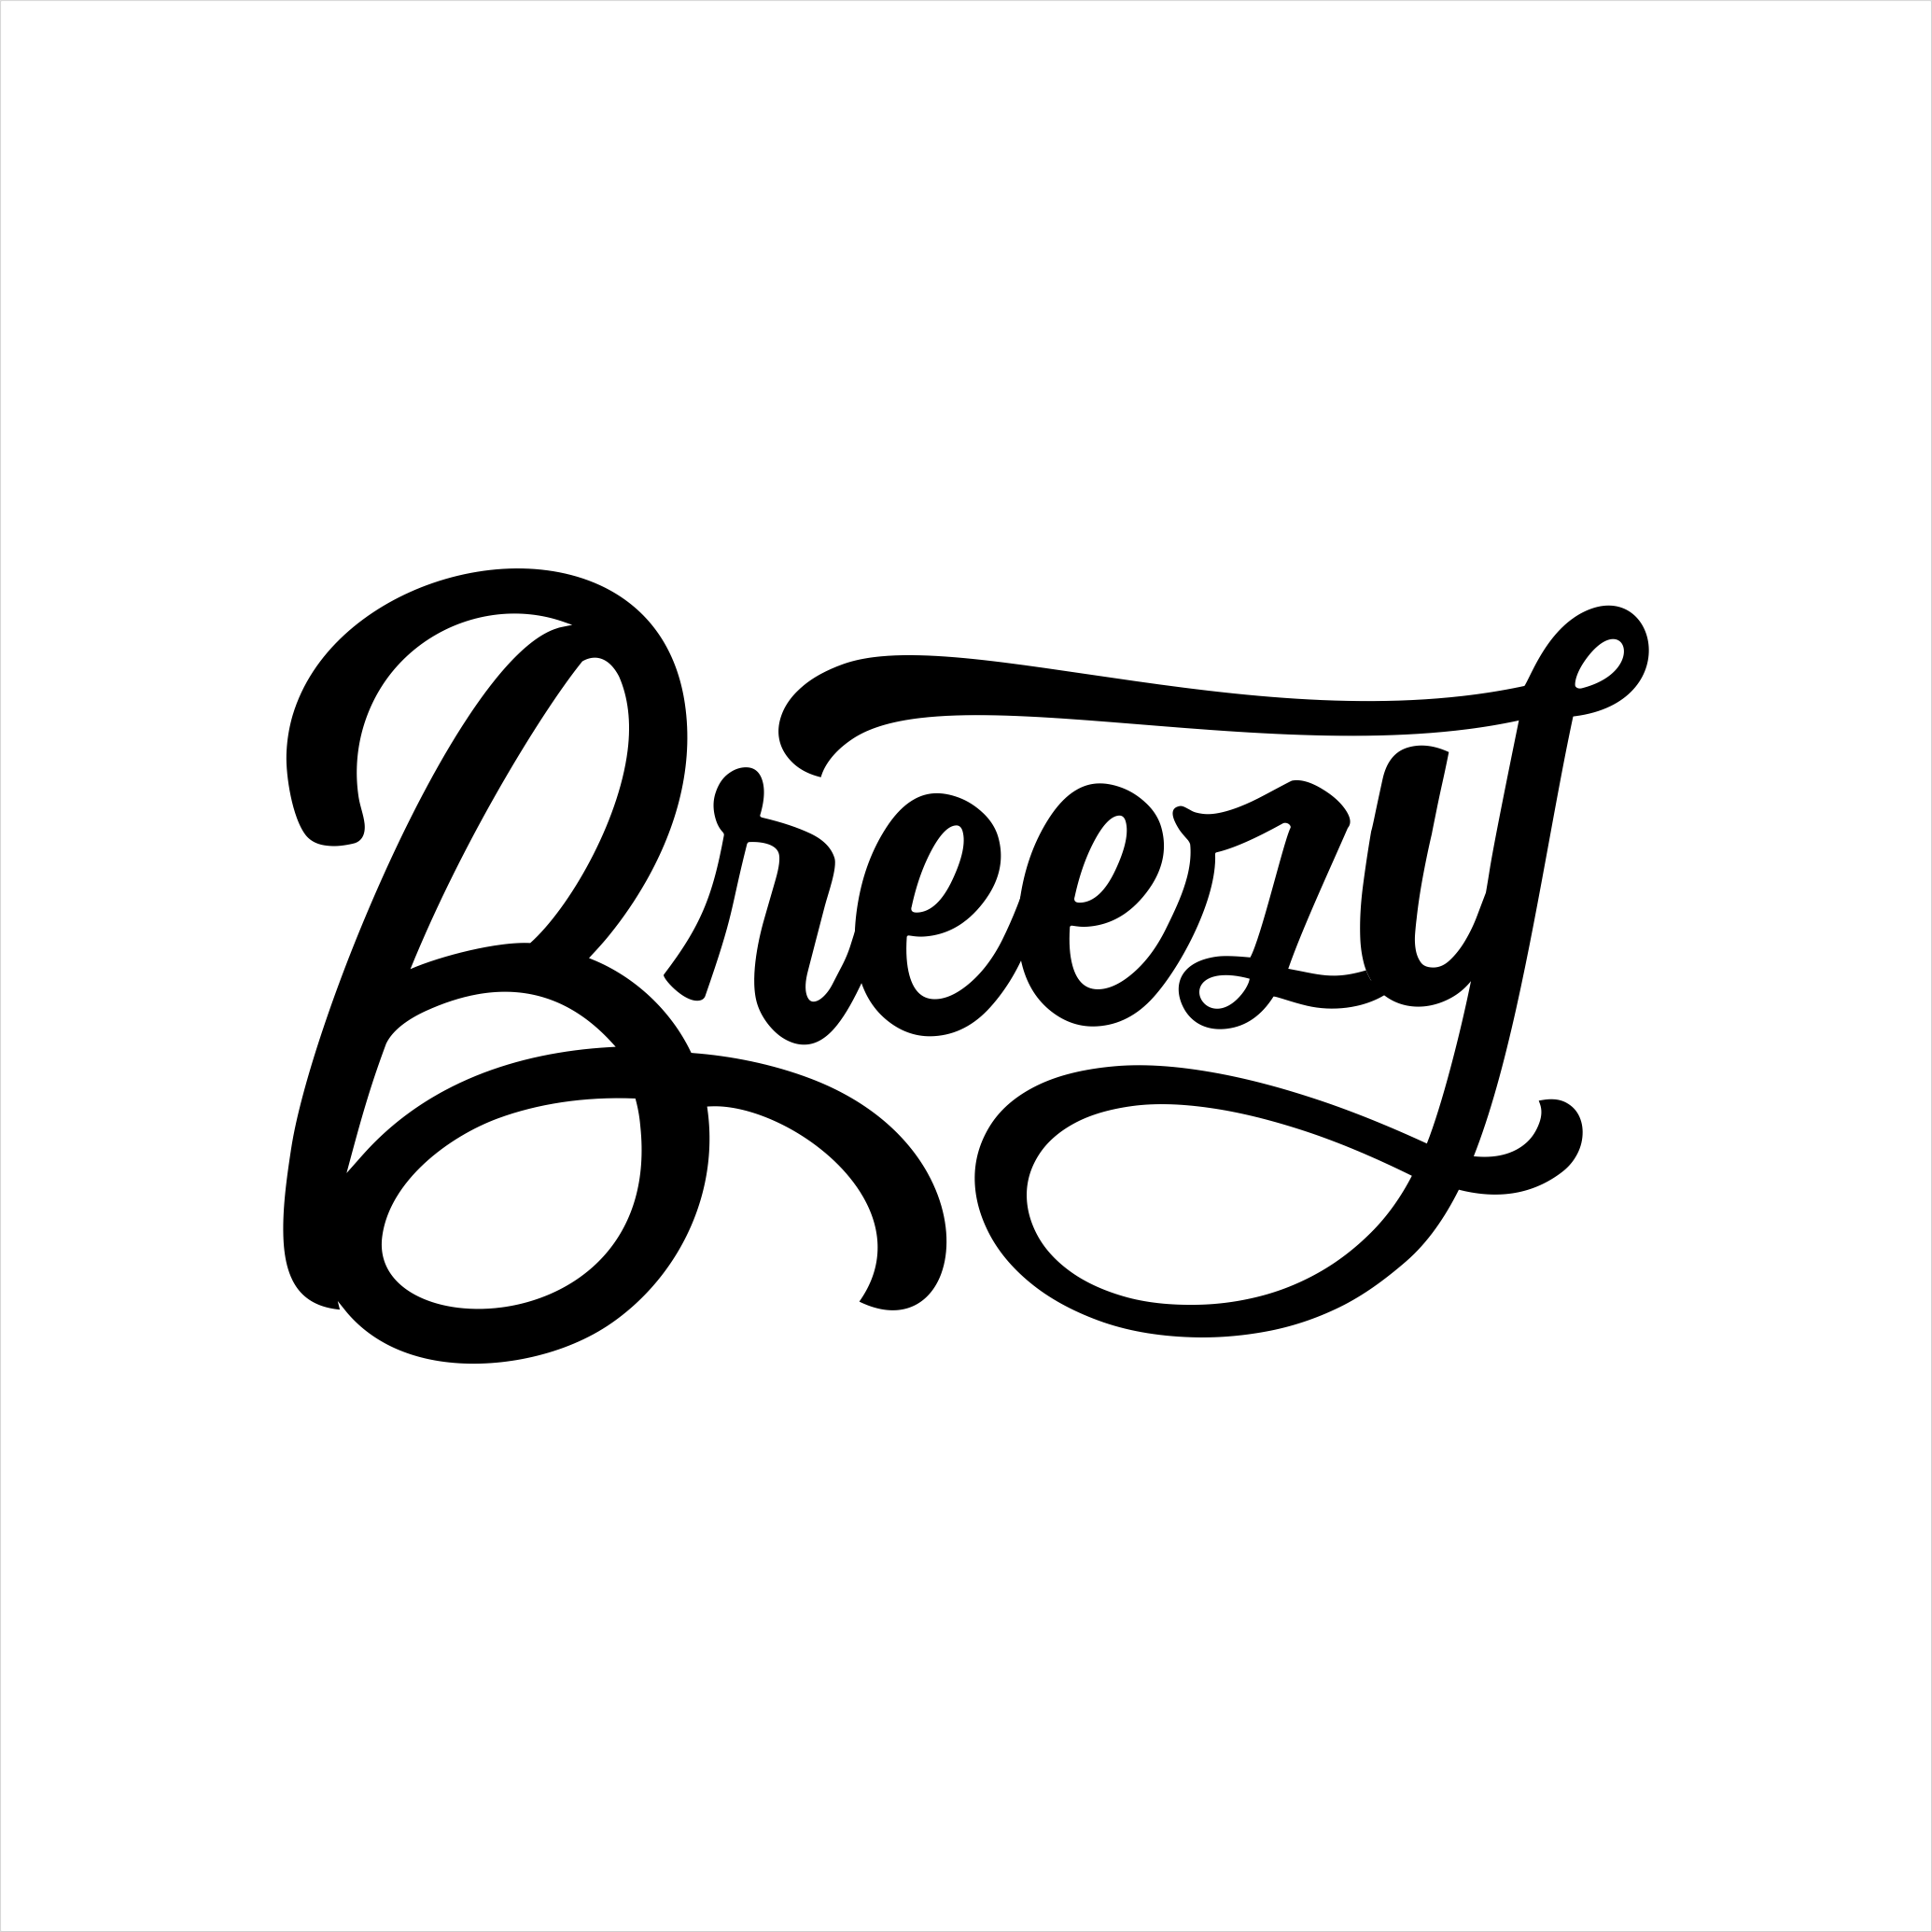 BREEZY - Need a logo that is indie, friendly and modern - targeting filmmakers